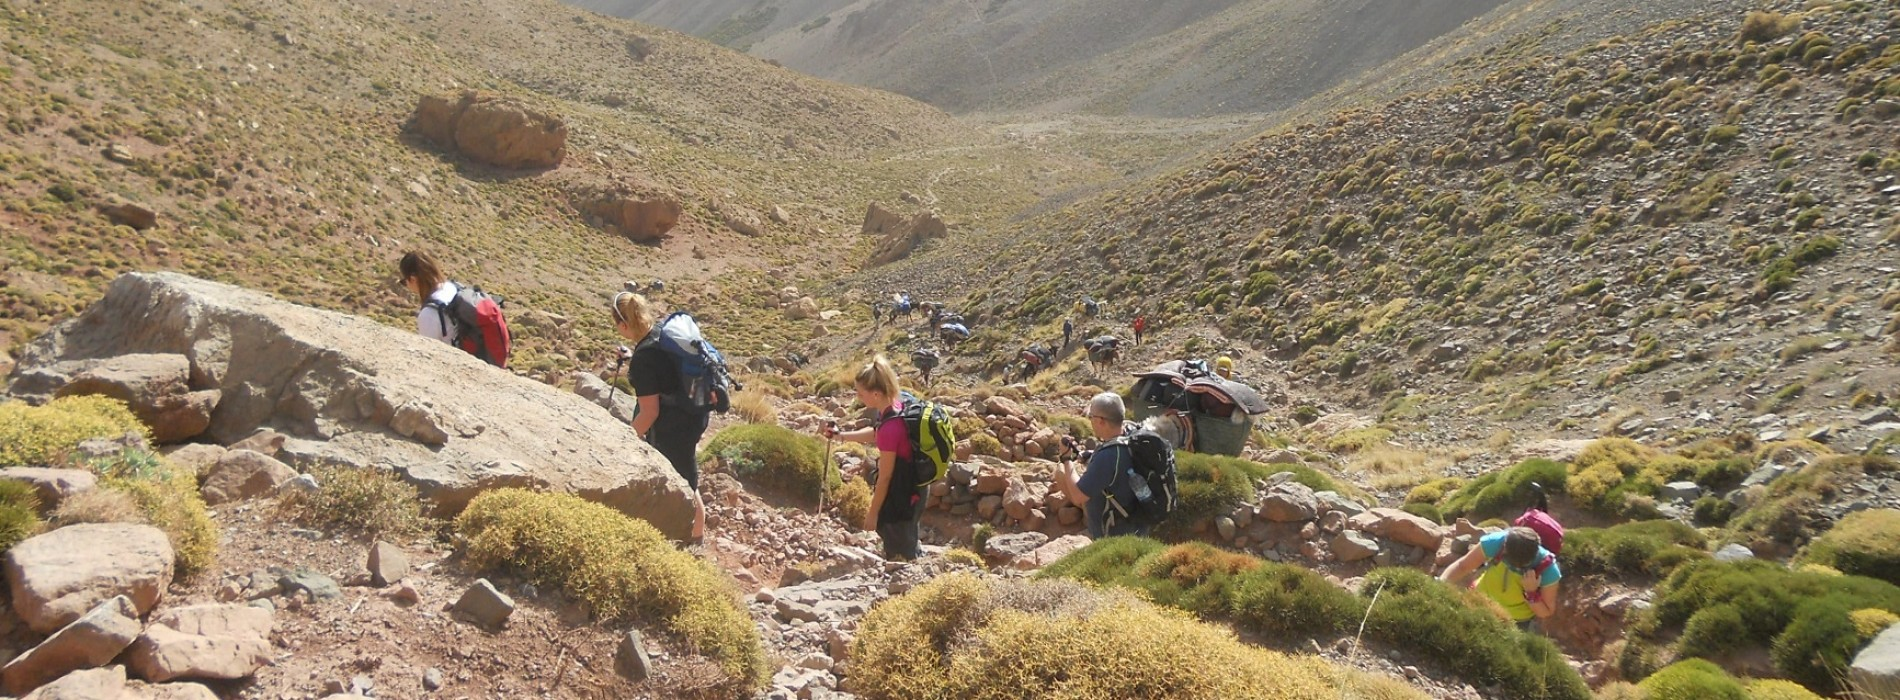 Trekking in the rocky foothills of the High Atlas Mountains